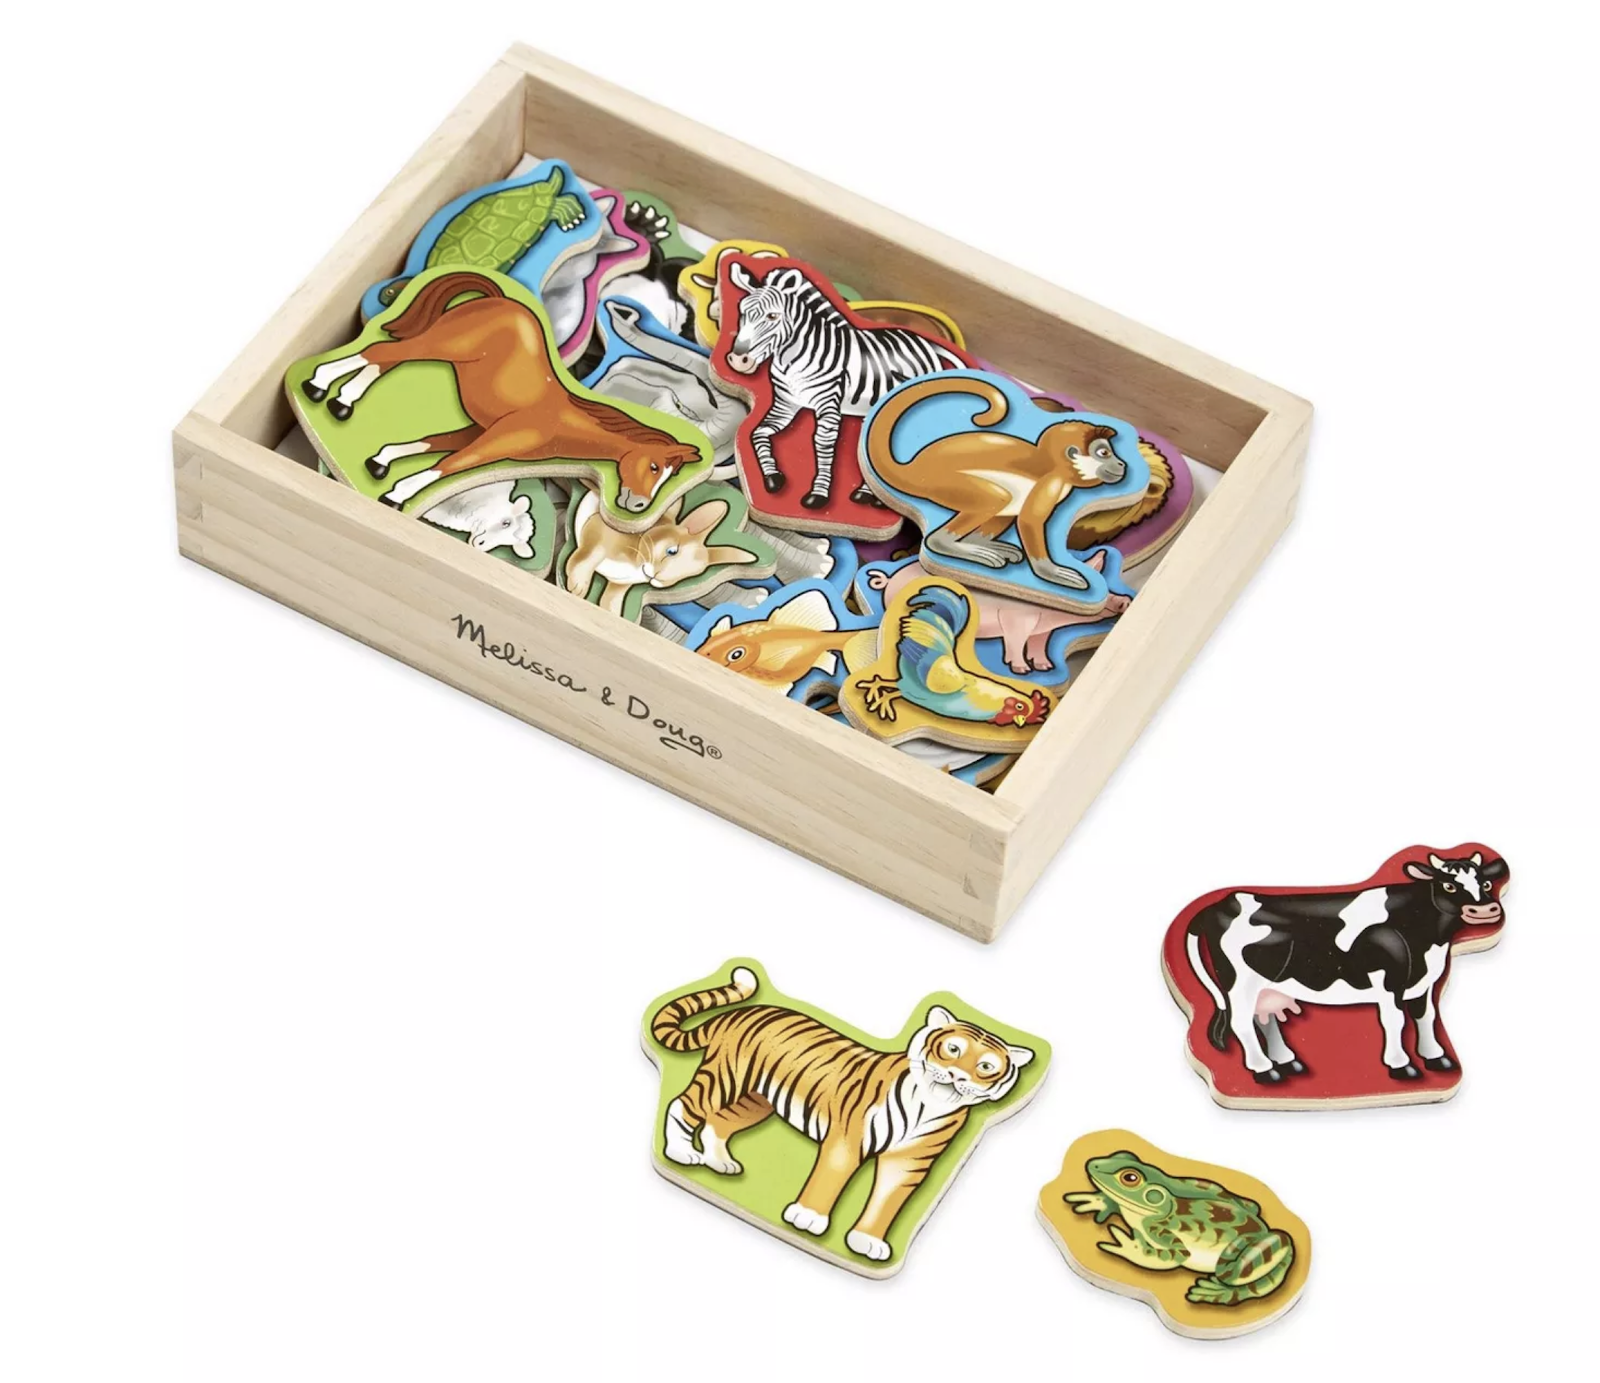 An assortment of wooden animal magnets.